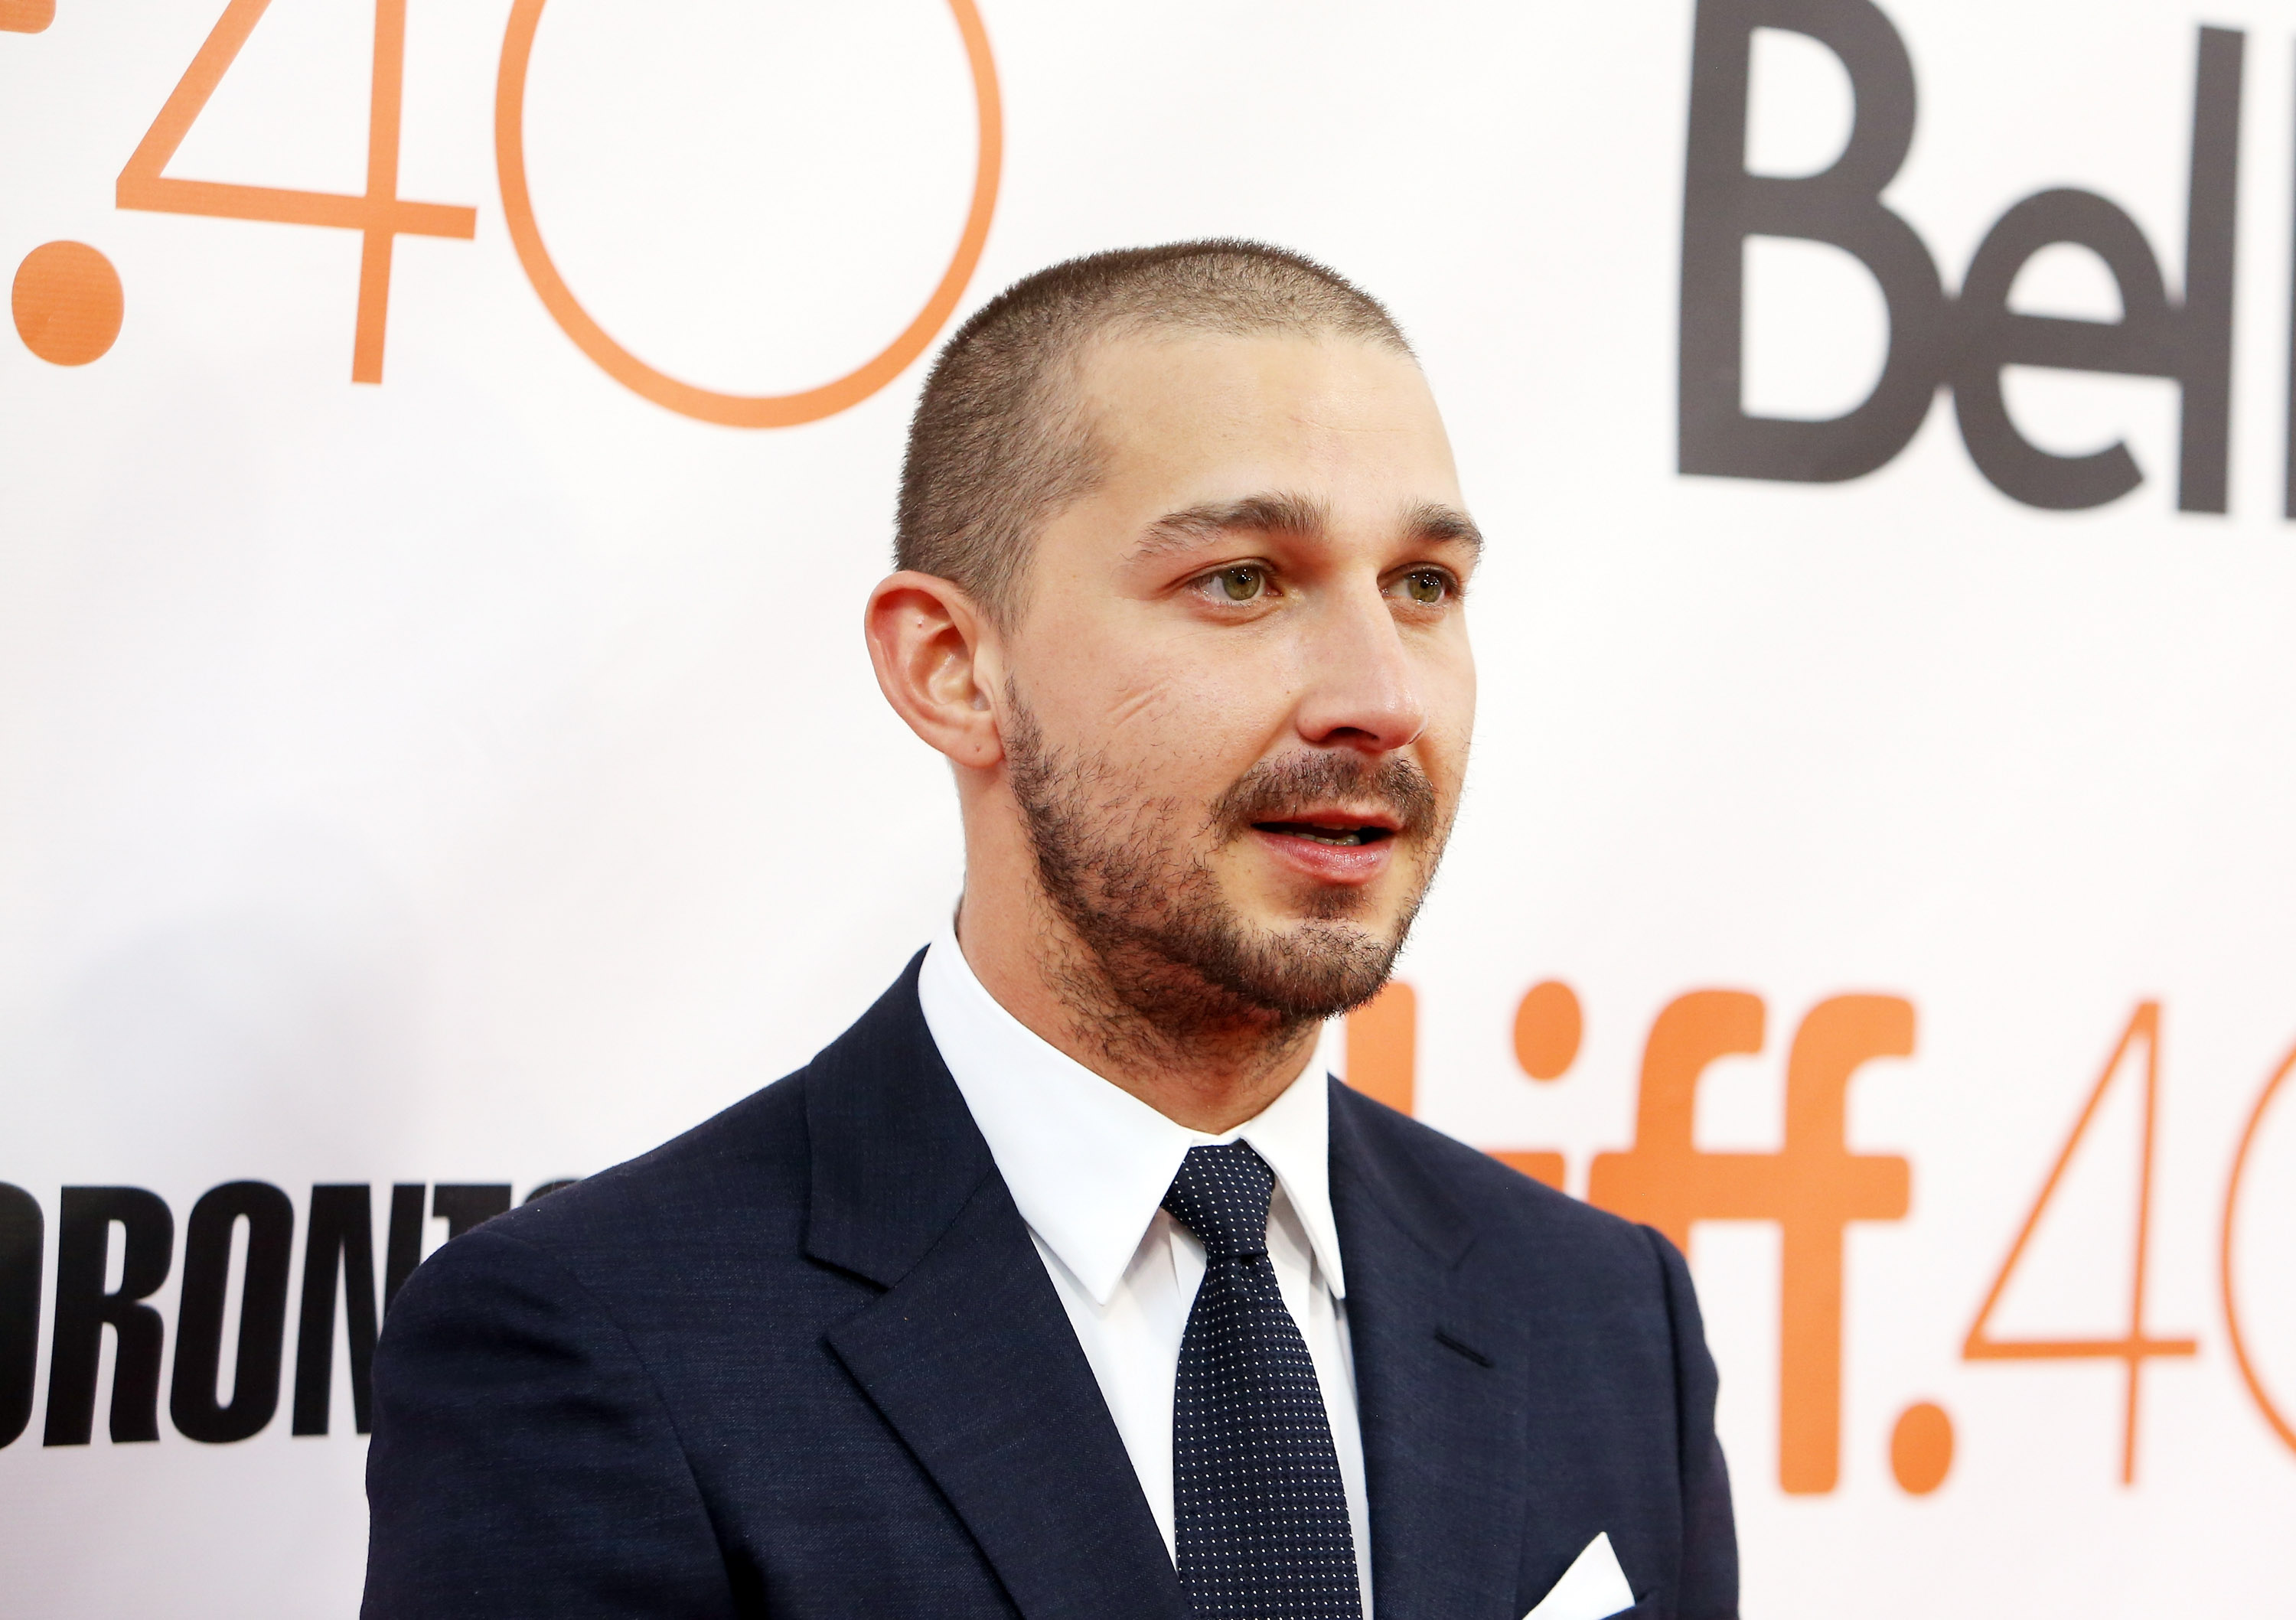 Shia LaBeouf arrives at the  Man Down  premiere during 2015 Toronto International Film Festival held at Roy Thomson Hall on Sept. 15, 2015 in Toronto, Canada.